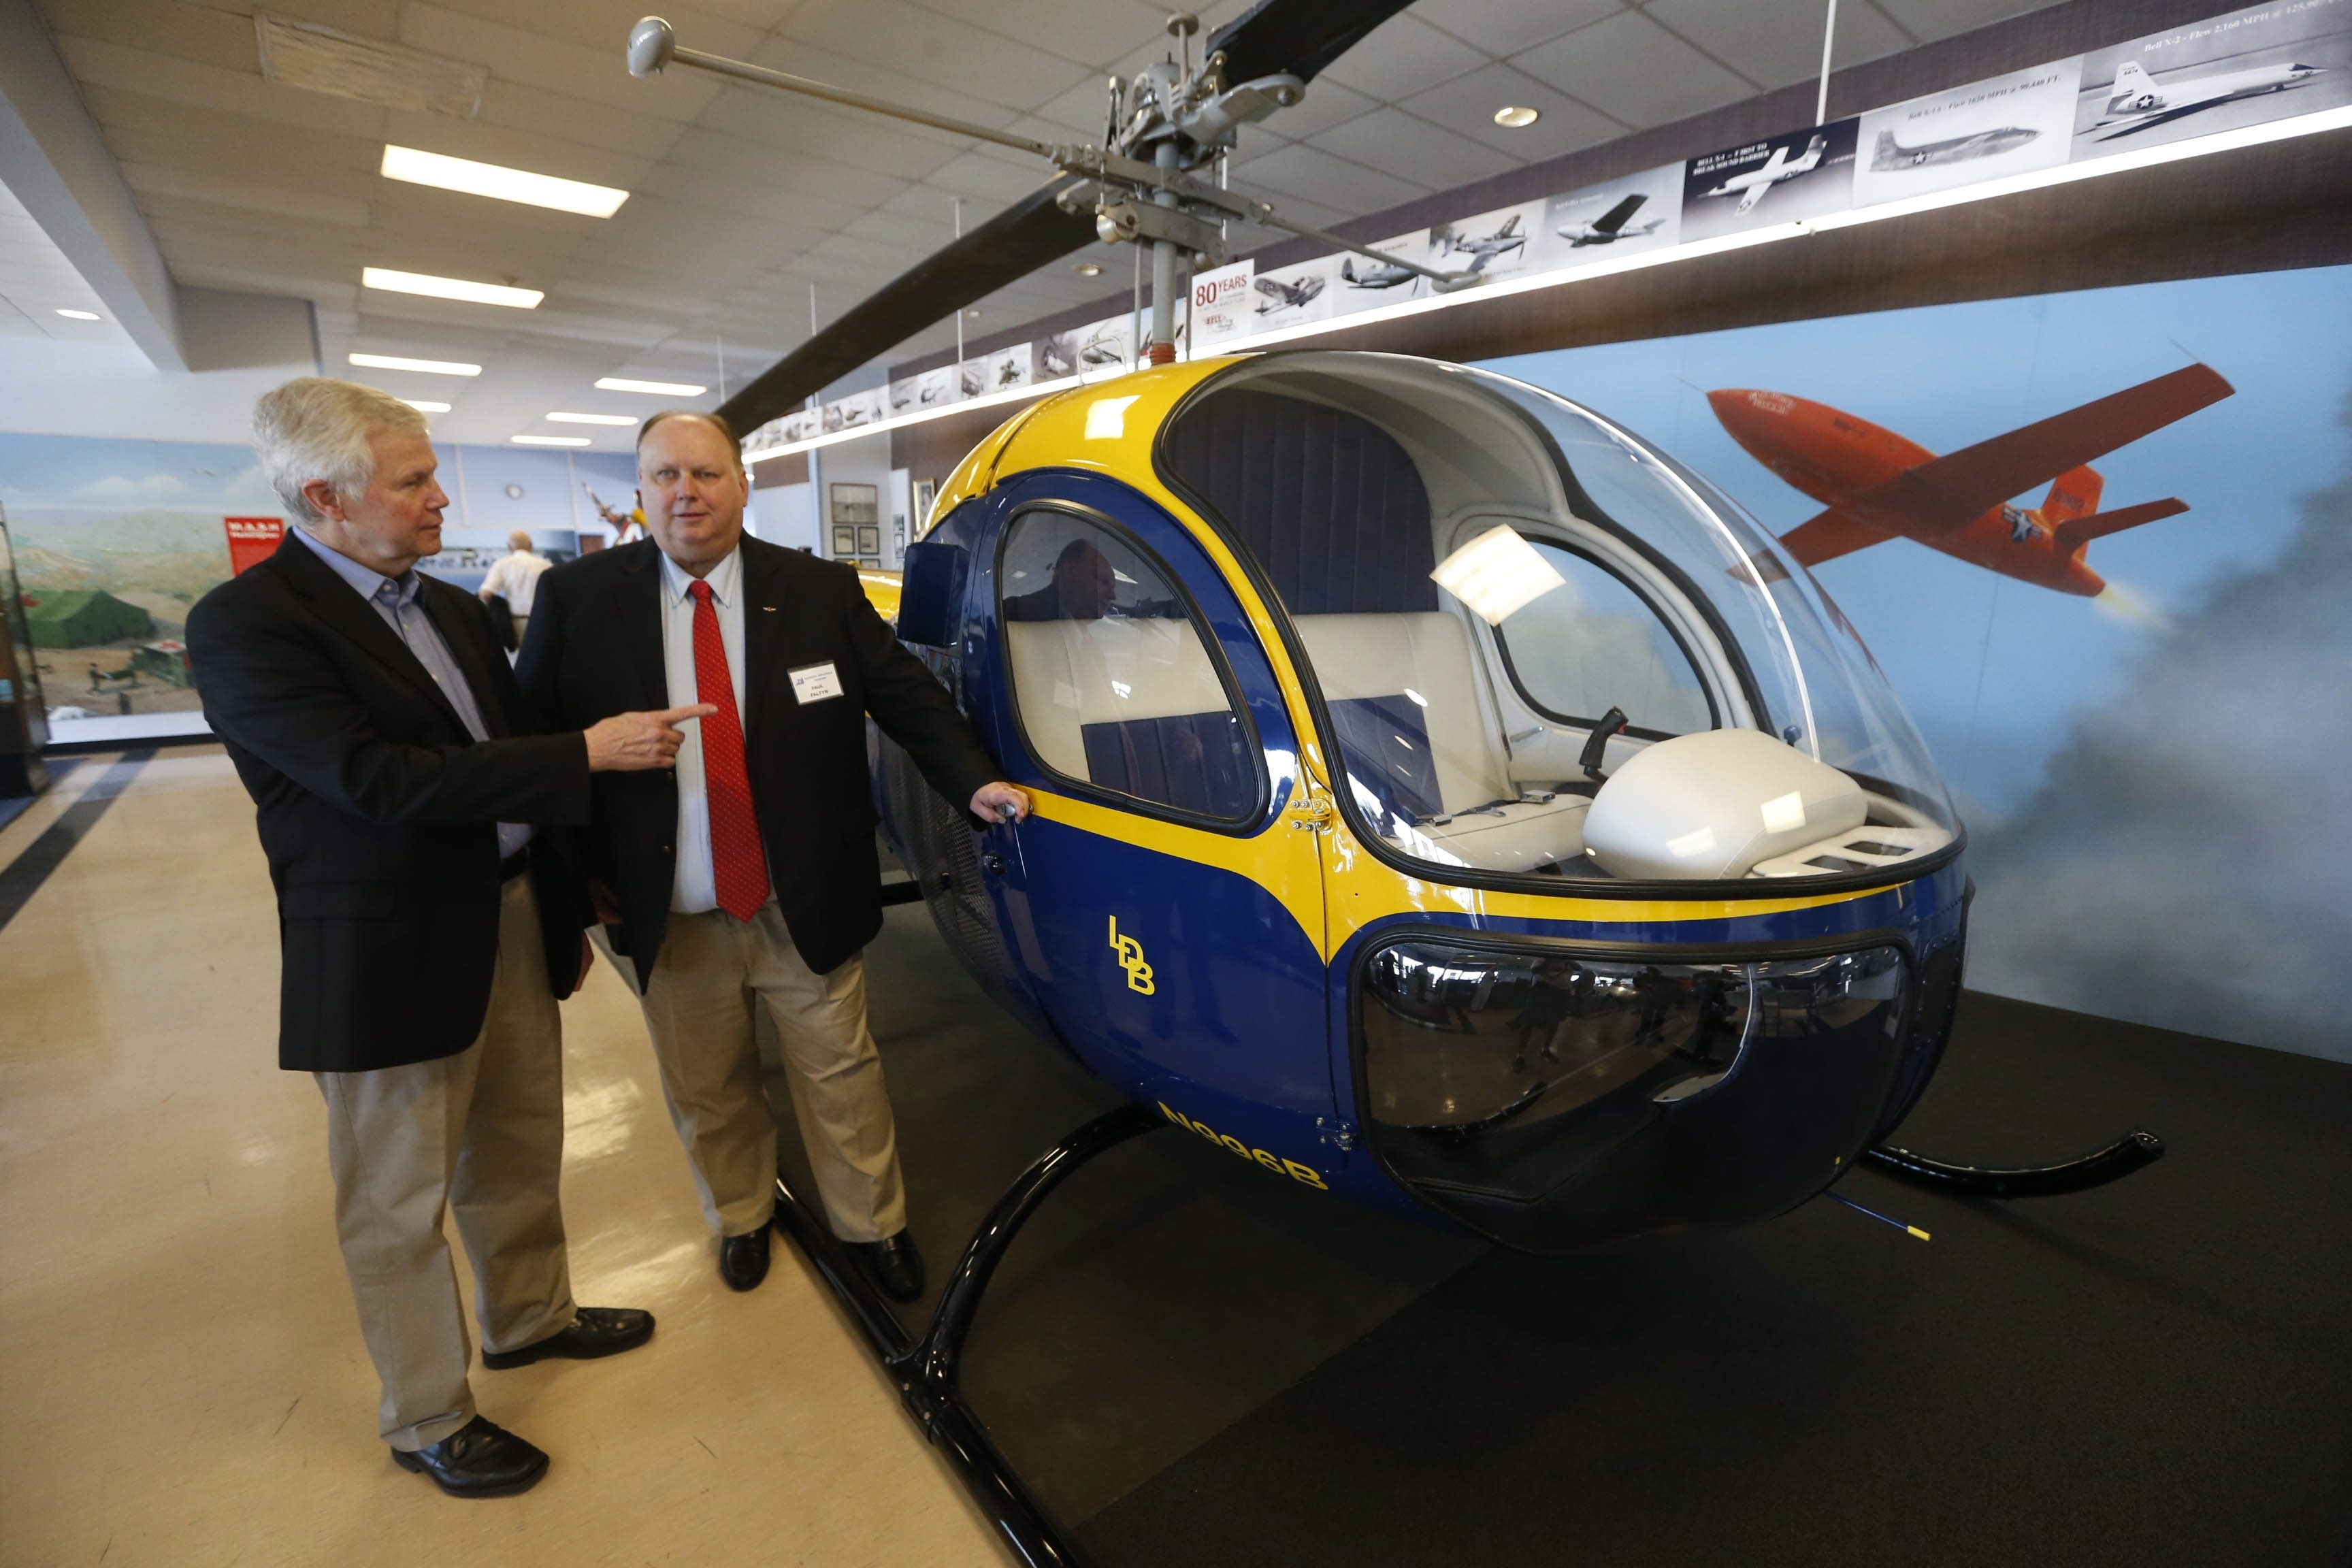 Todd Carlson, left, son of pioneering test pilot Floyd Carlson, discusses Bell helicopter with Paul Faltyn, director of Niagara Aerospace Museum at a display at Buffalo Niagara International Airport. Floyd Carlson helped make aviation history at Union and Losson roads.